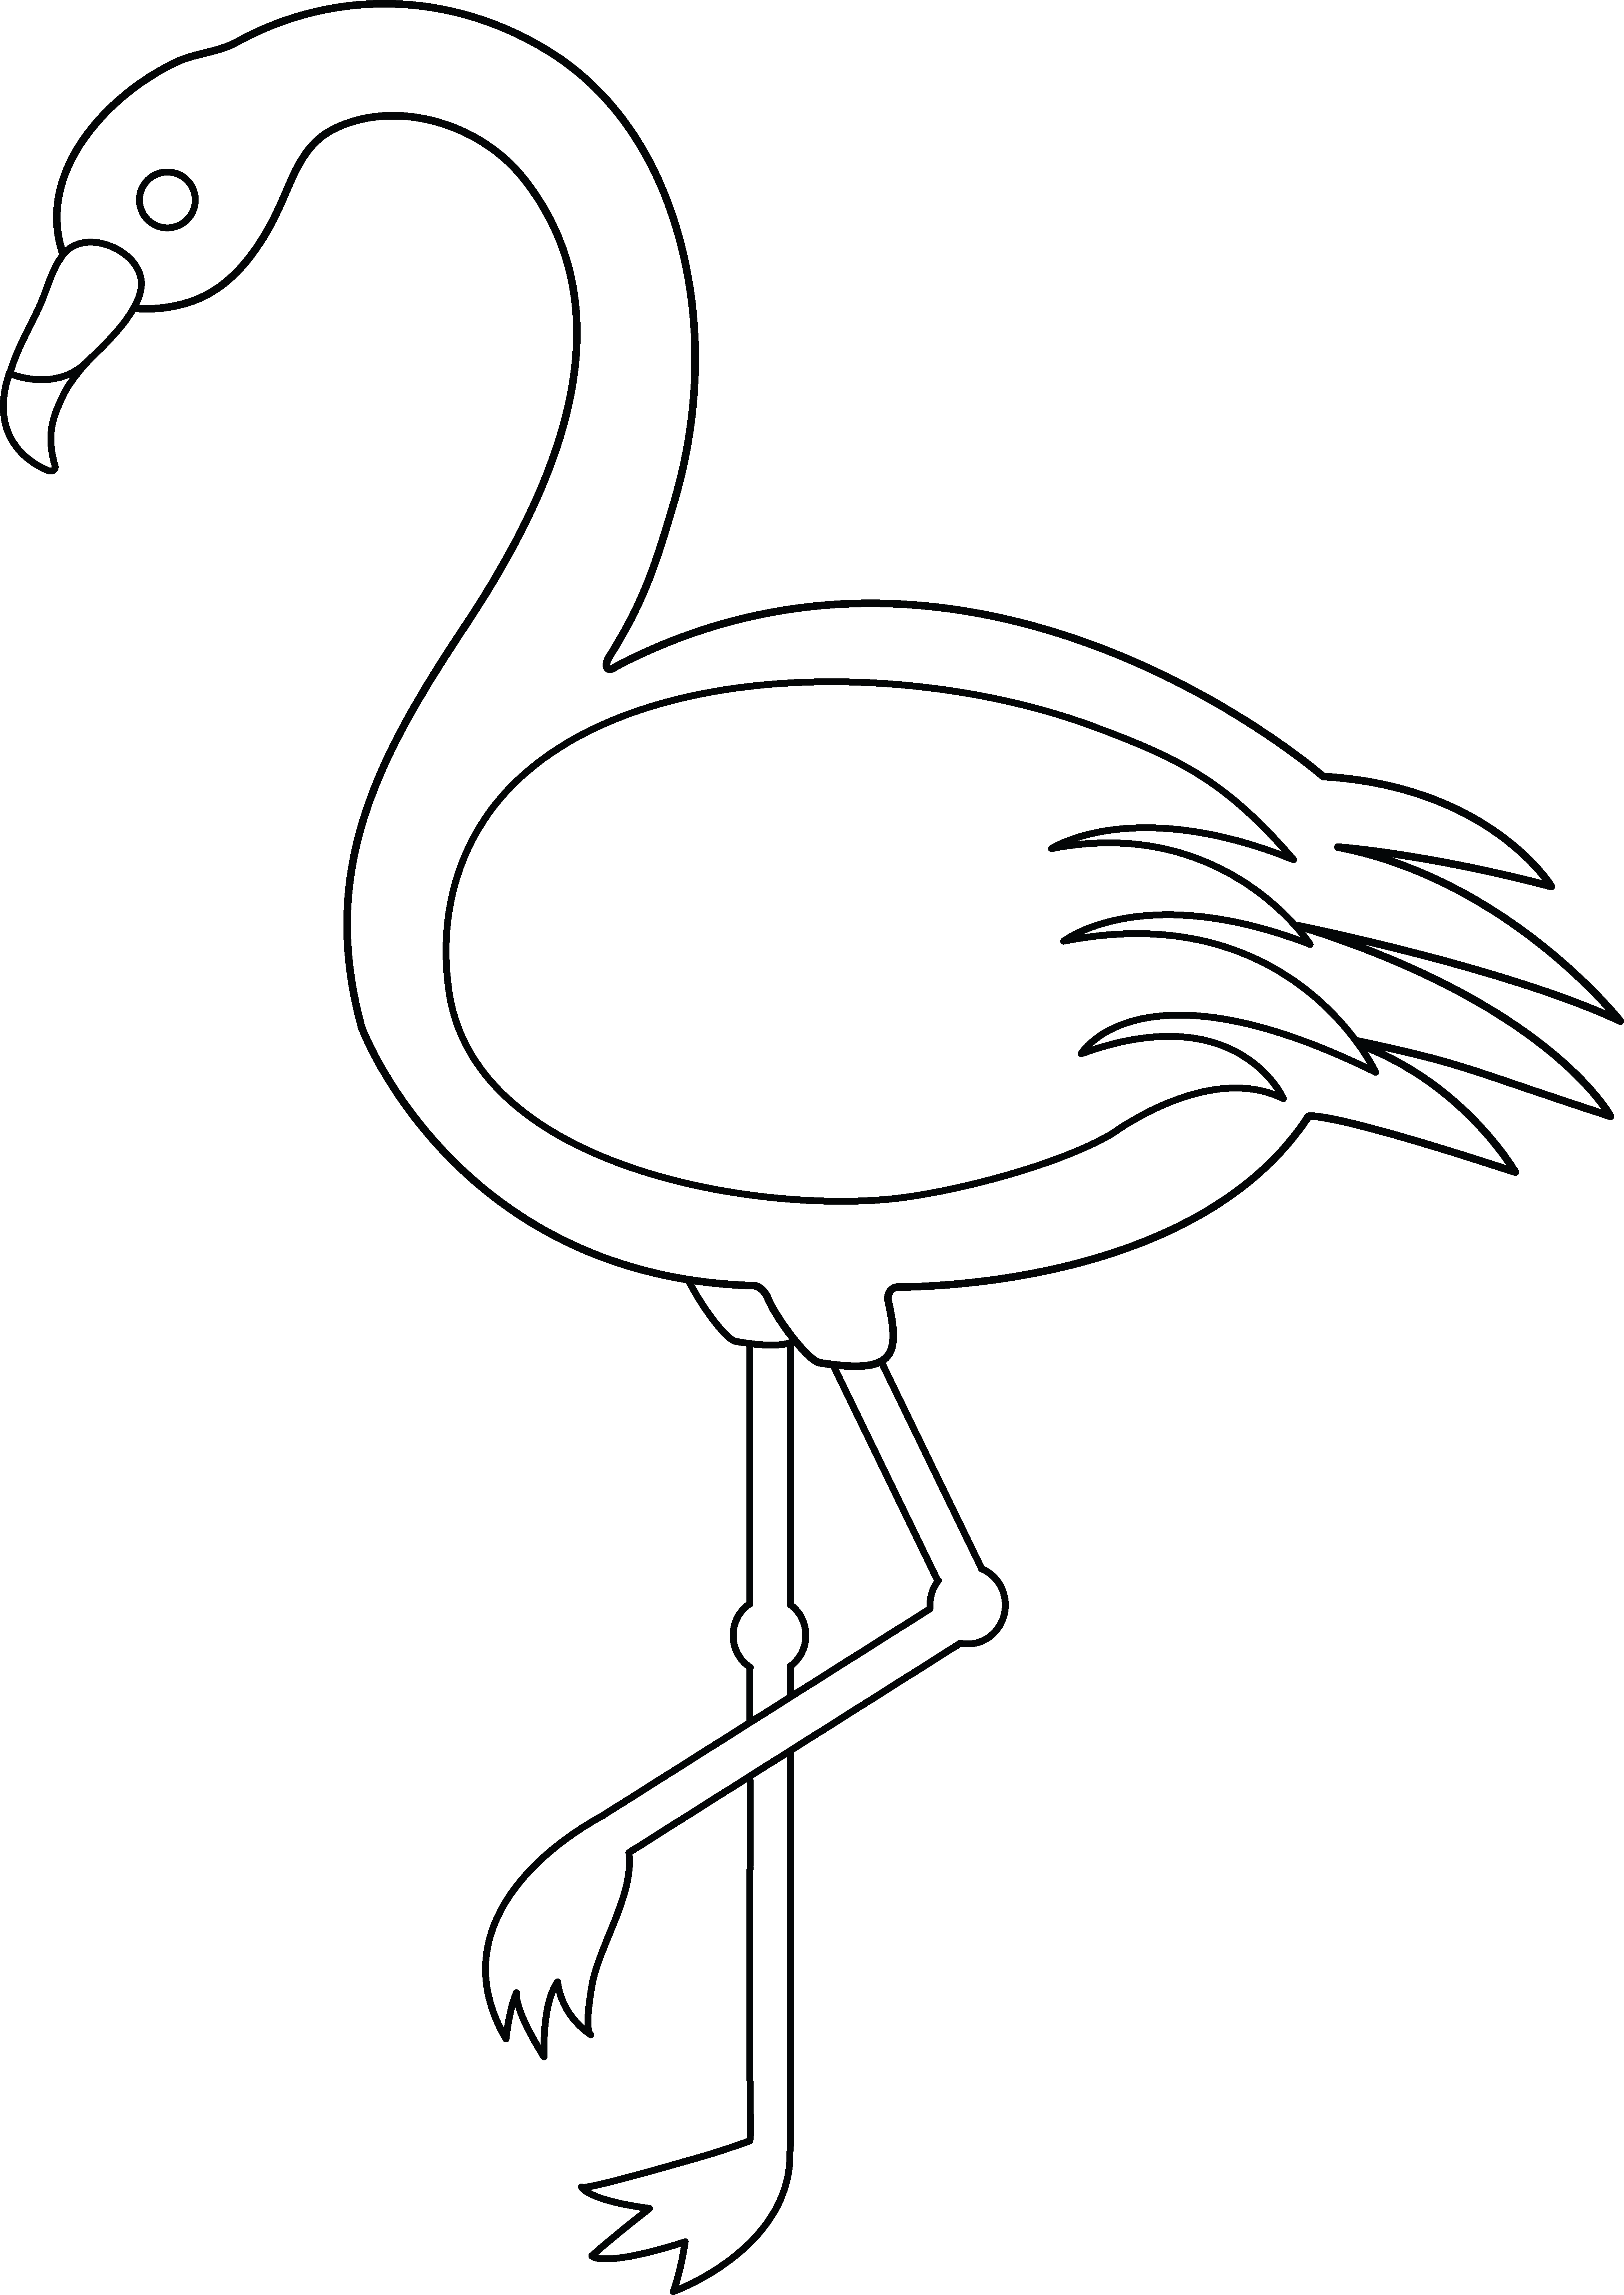 Black and white clipart flamingo banner royalty free stock Flamingo black and white clipart clipart images gallery for free ... banner royalty free stock